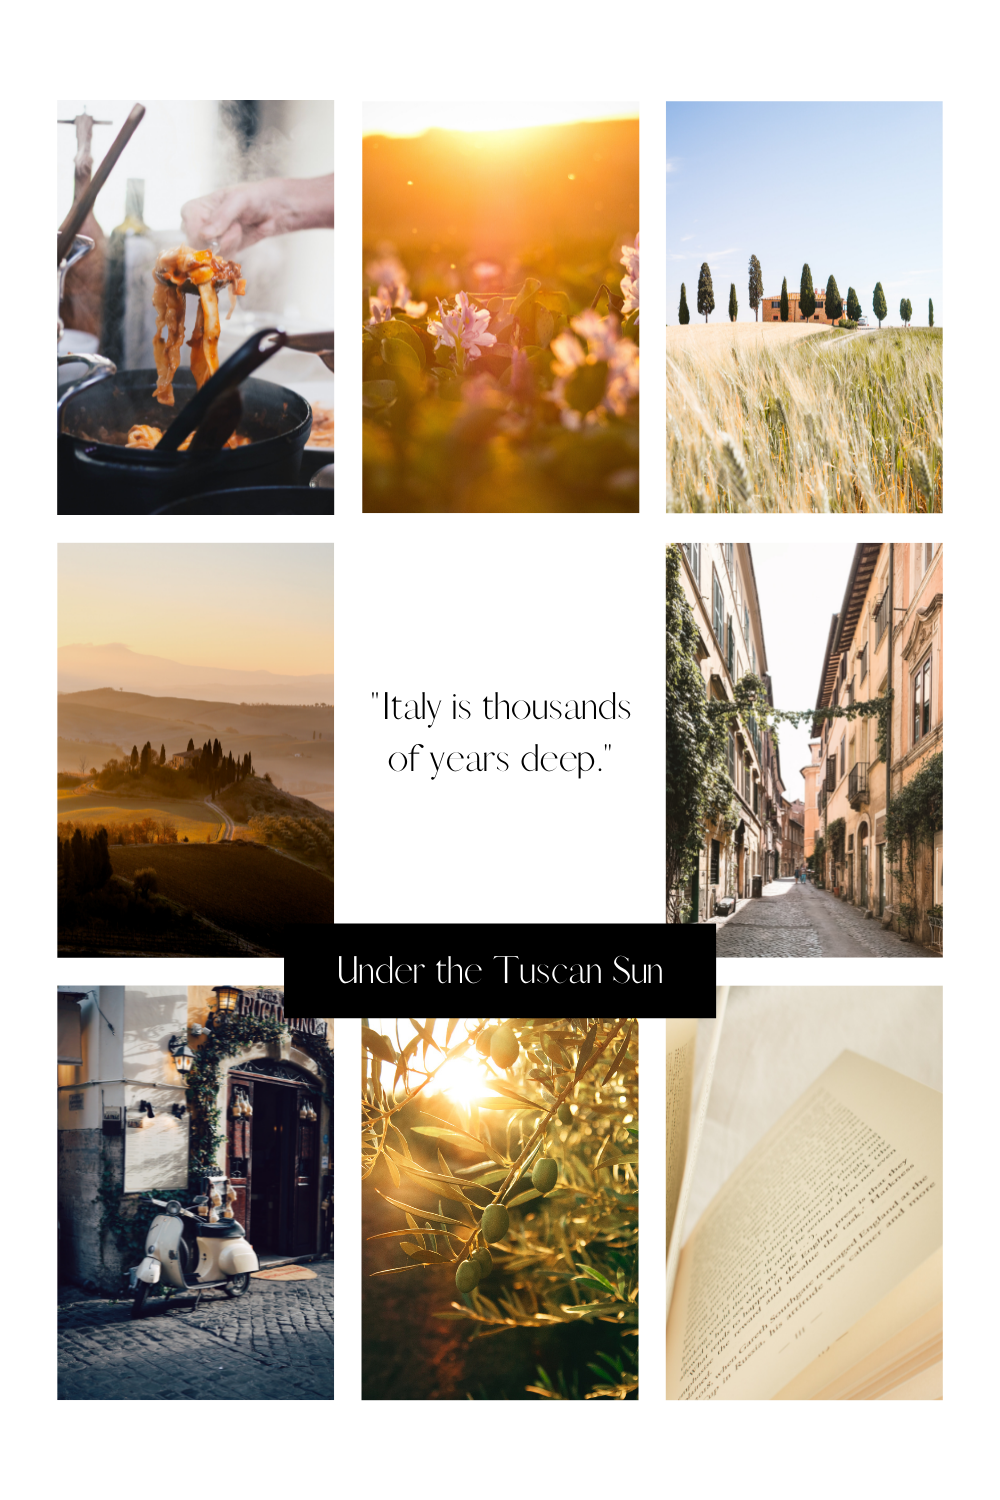 Under the Tuscan Sun collage